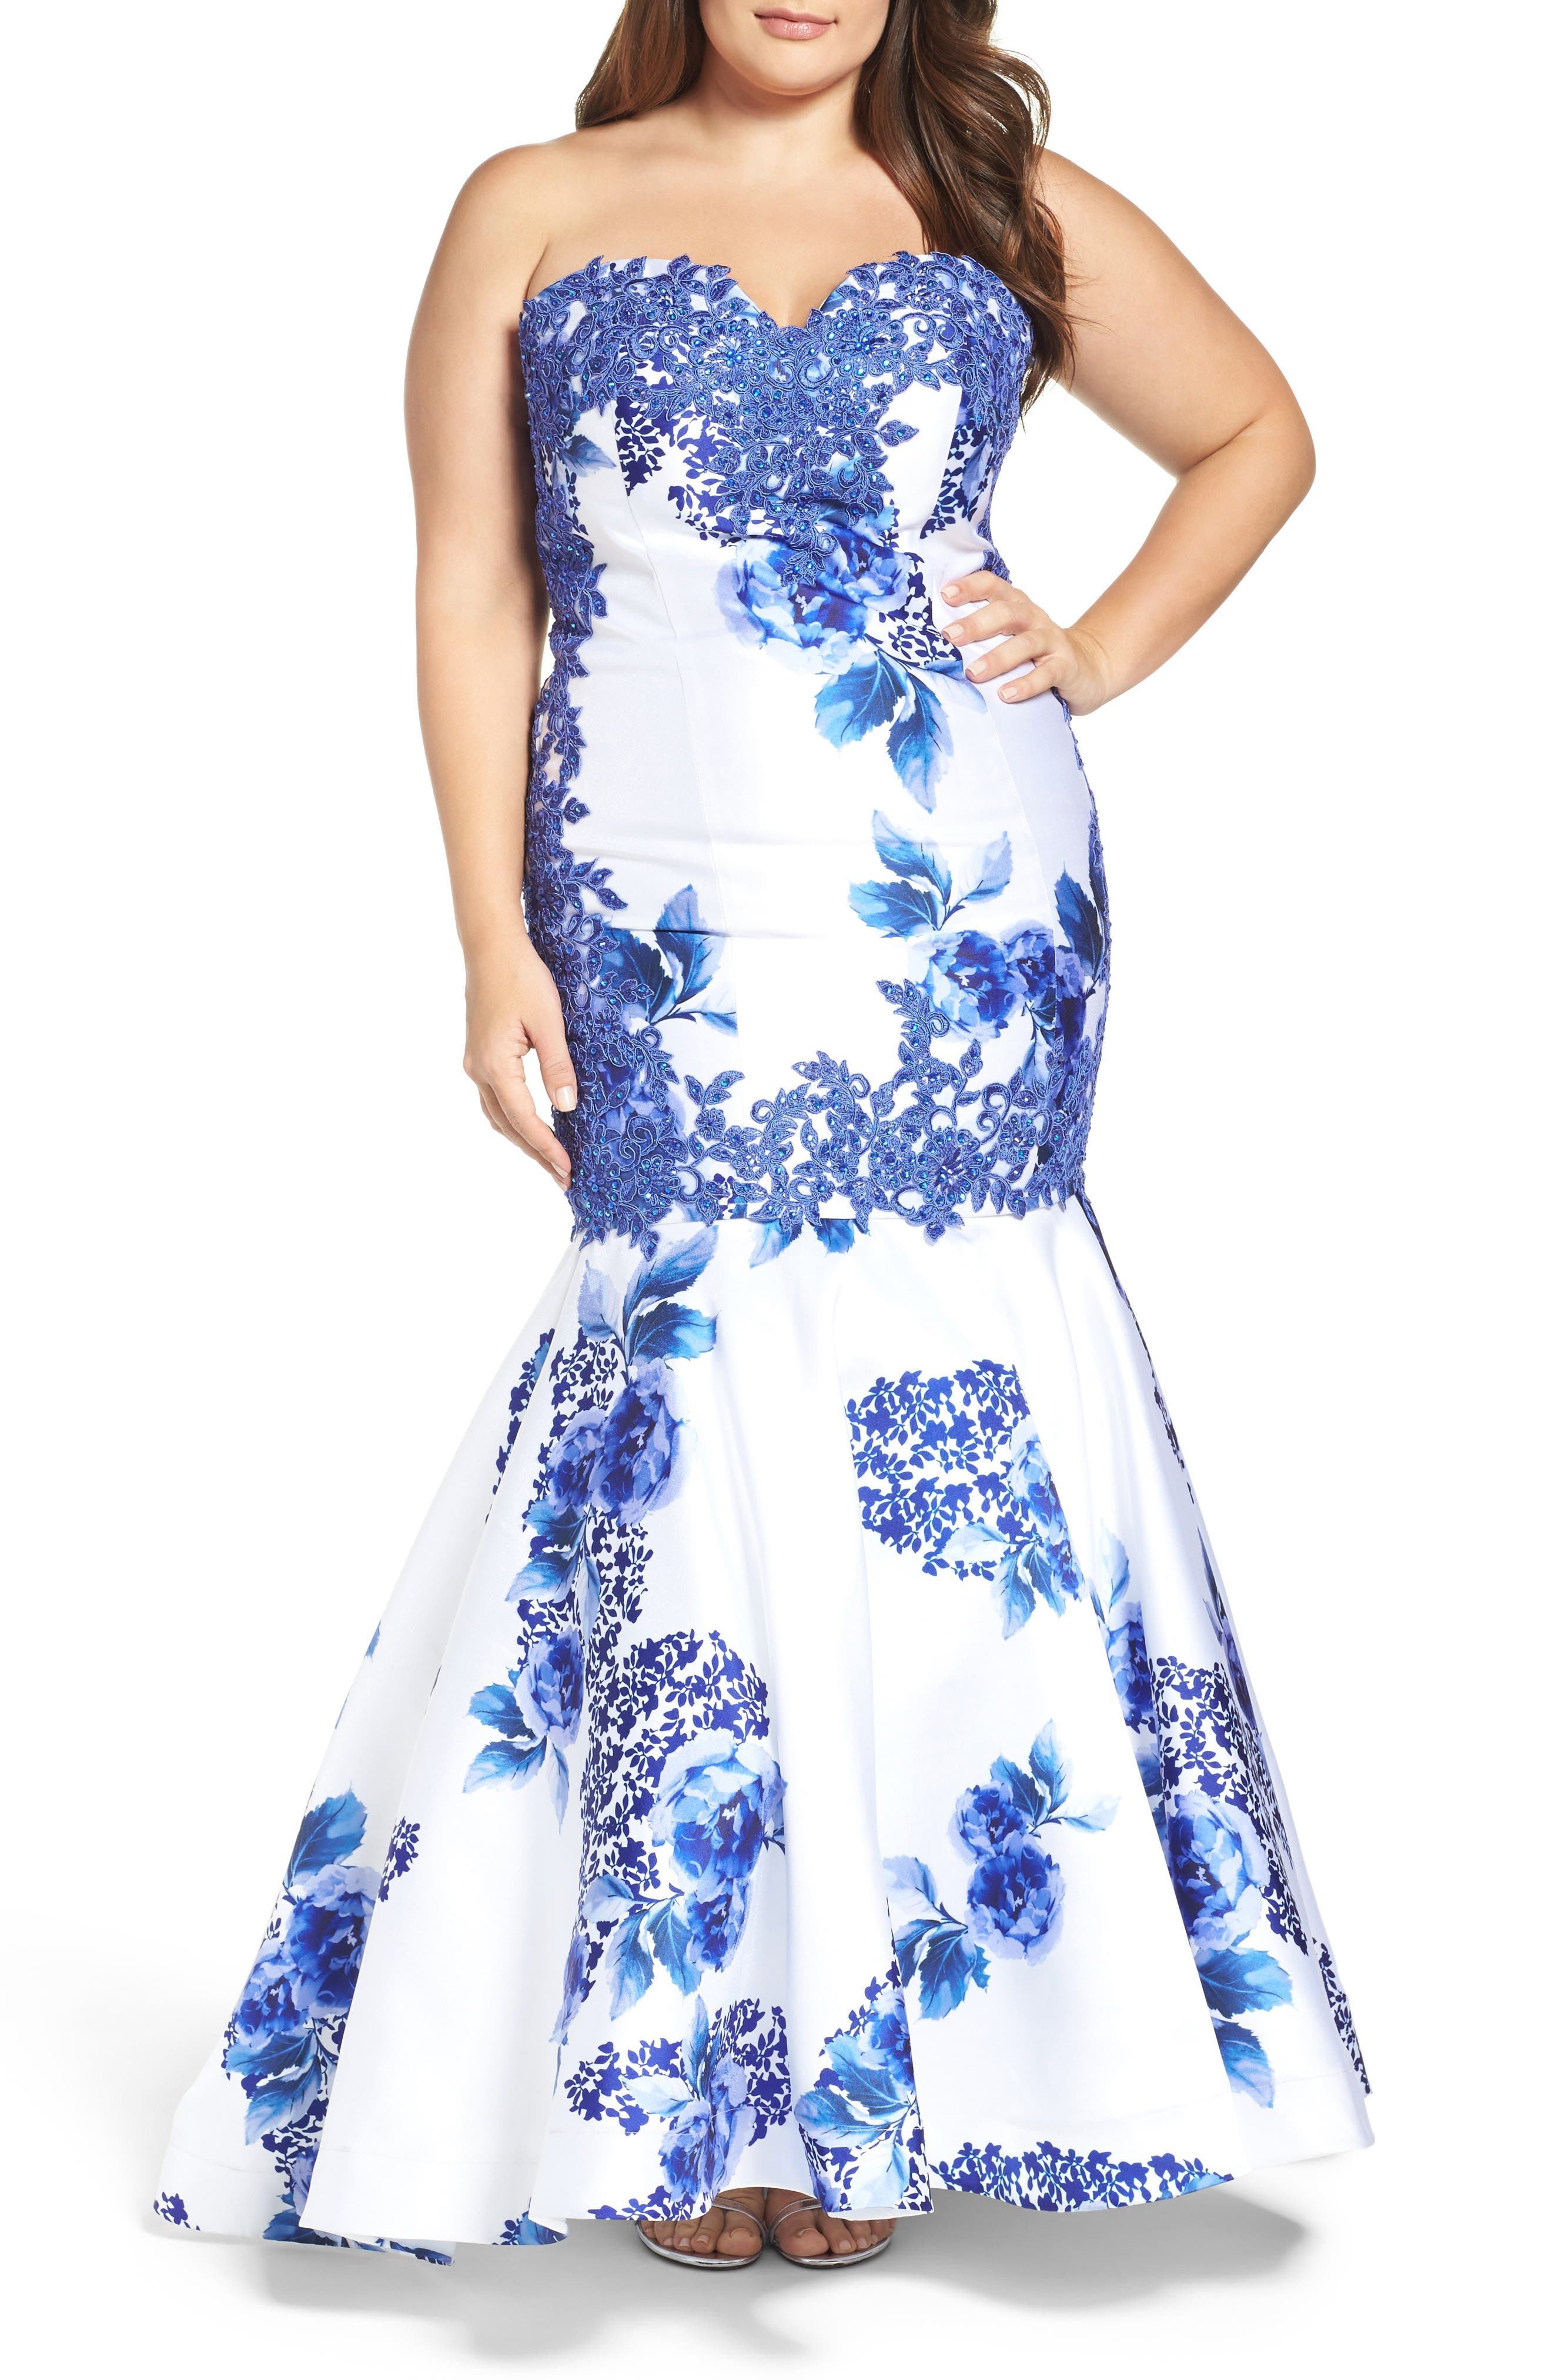 Embellished Strapless Zip Off Mermaid Gown,                         Main,                         color, BLUE FLORAL